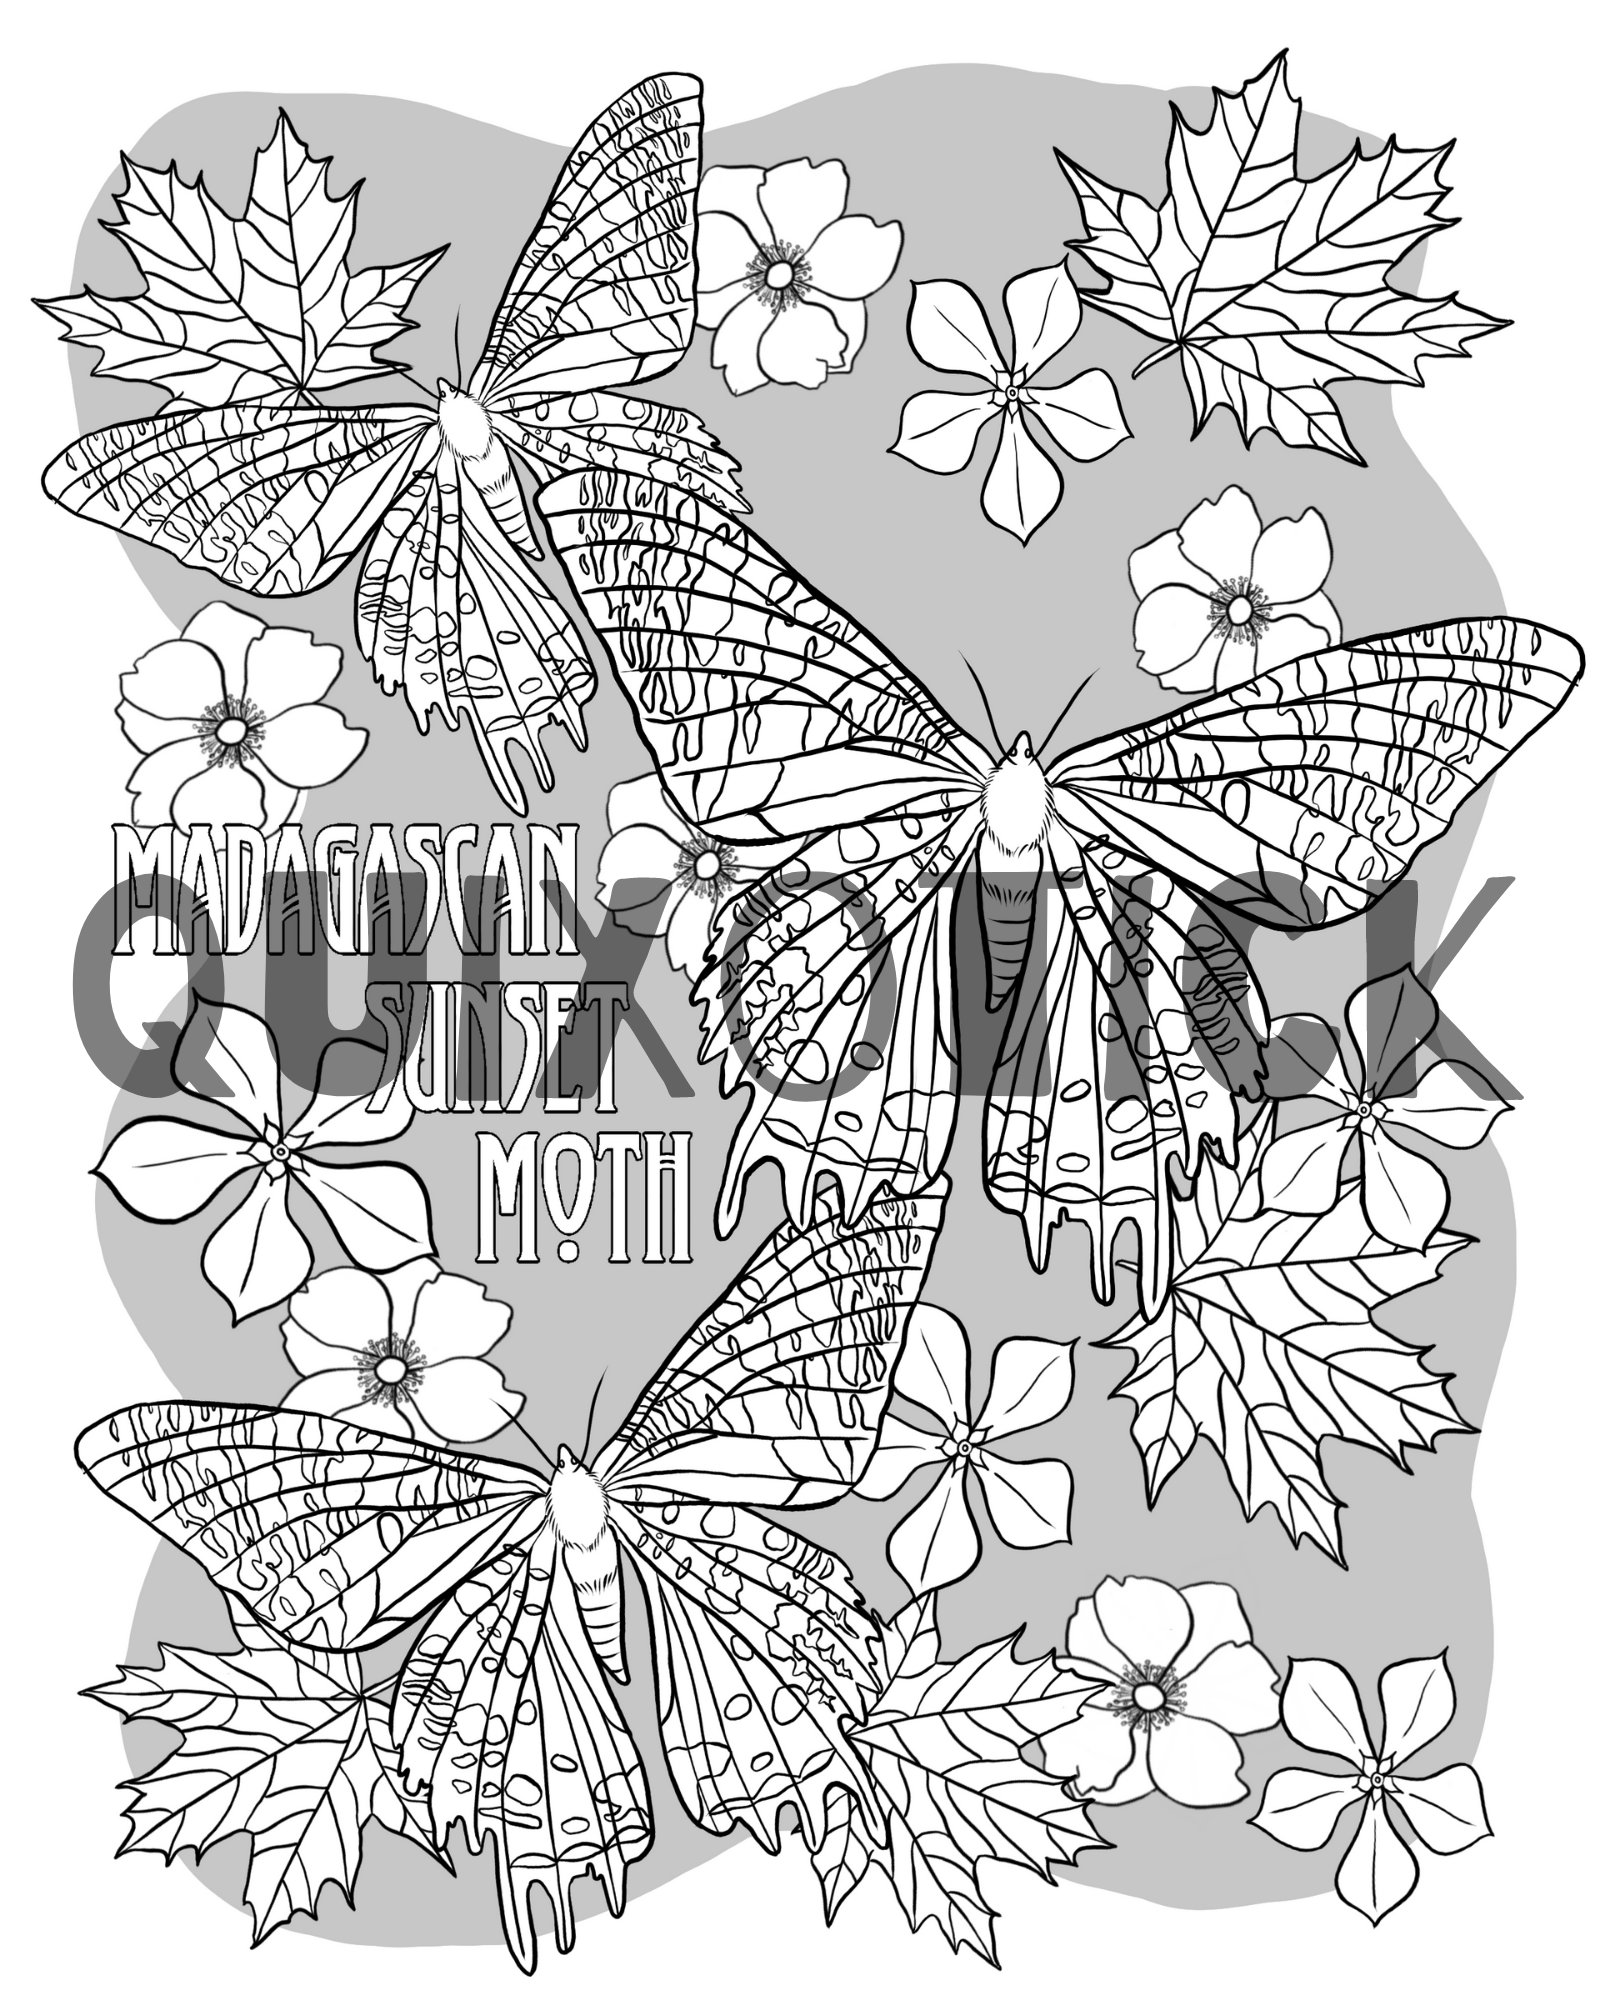 5 Moth Colouring Pages Instant Download Features 5 Moth Designs To Colour Madagascan Sunset Moth Sunset Moth Colouring Pages Hercules Moth